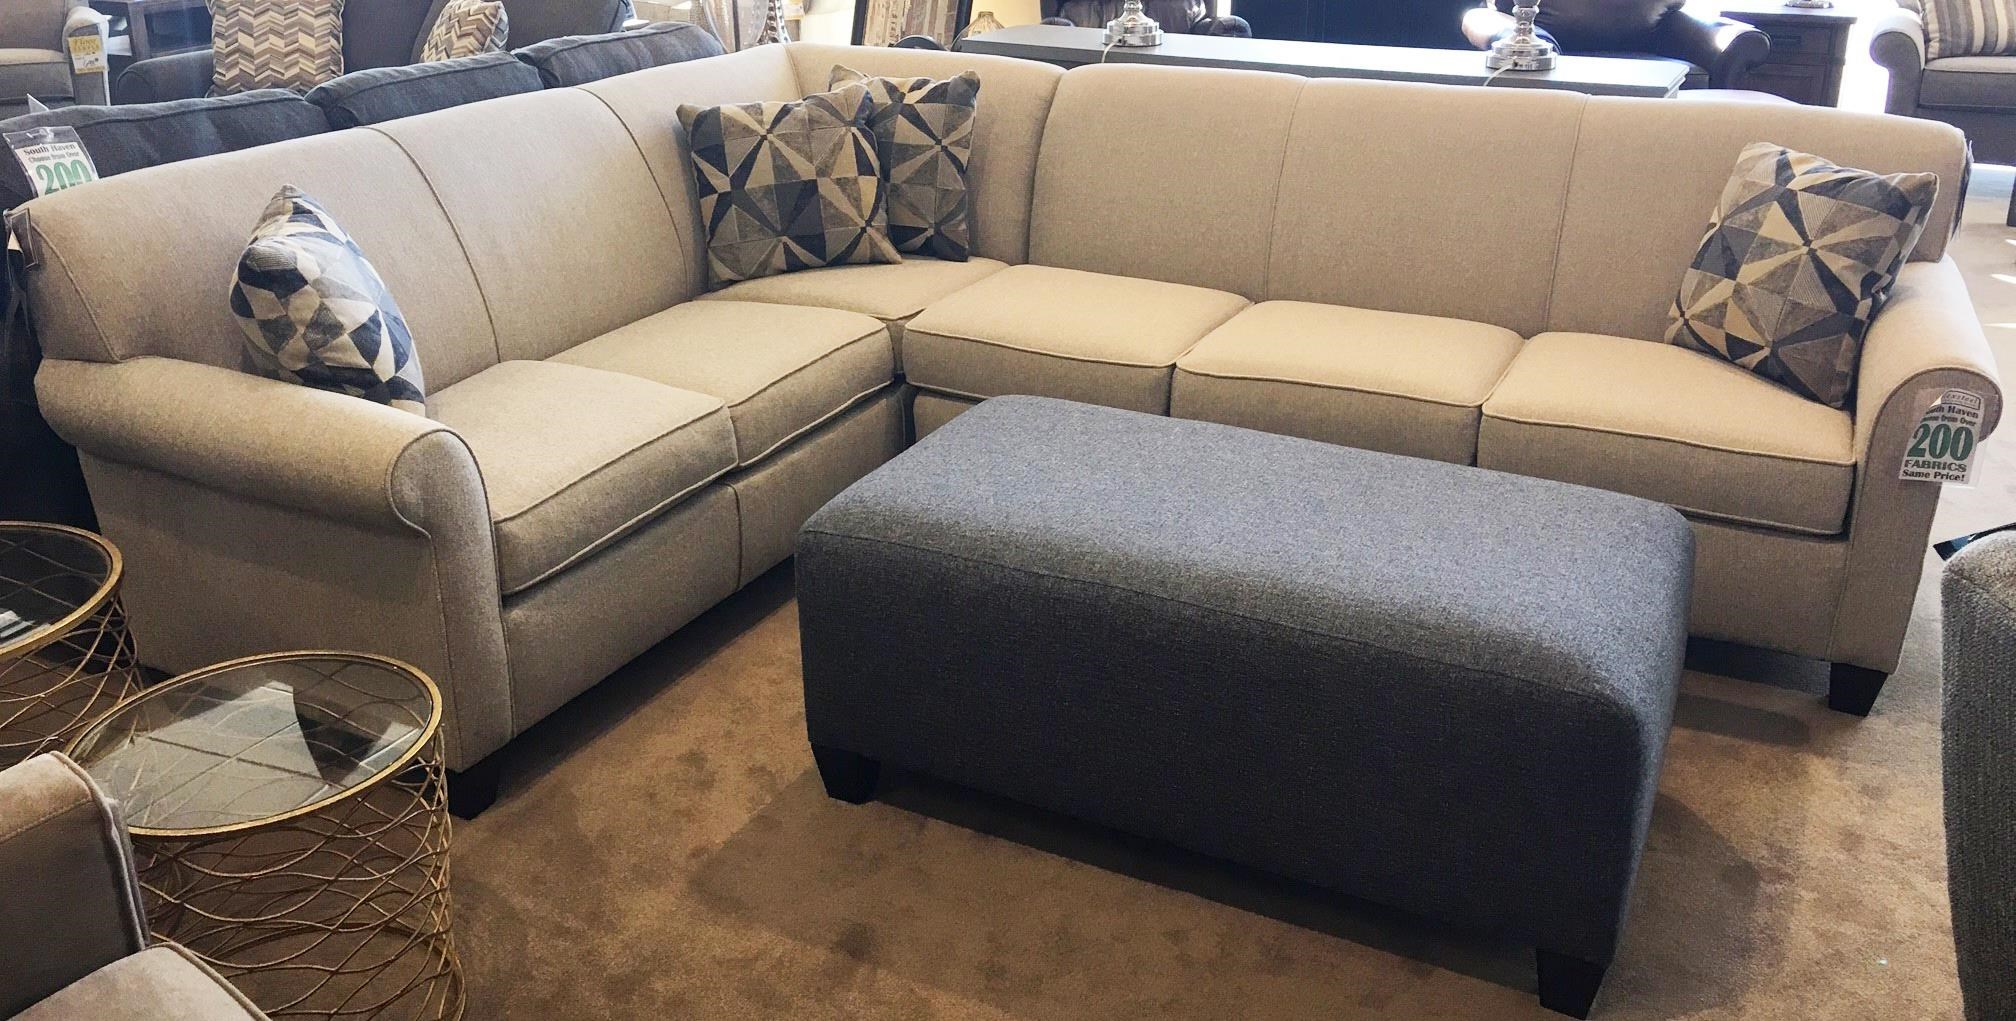 Sectional Corner Couch Dana Laf Corner Sofa Raf Sofa By Flexsteel At Godby Home Furnishings